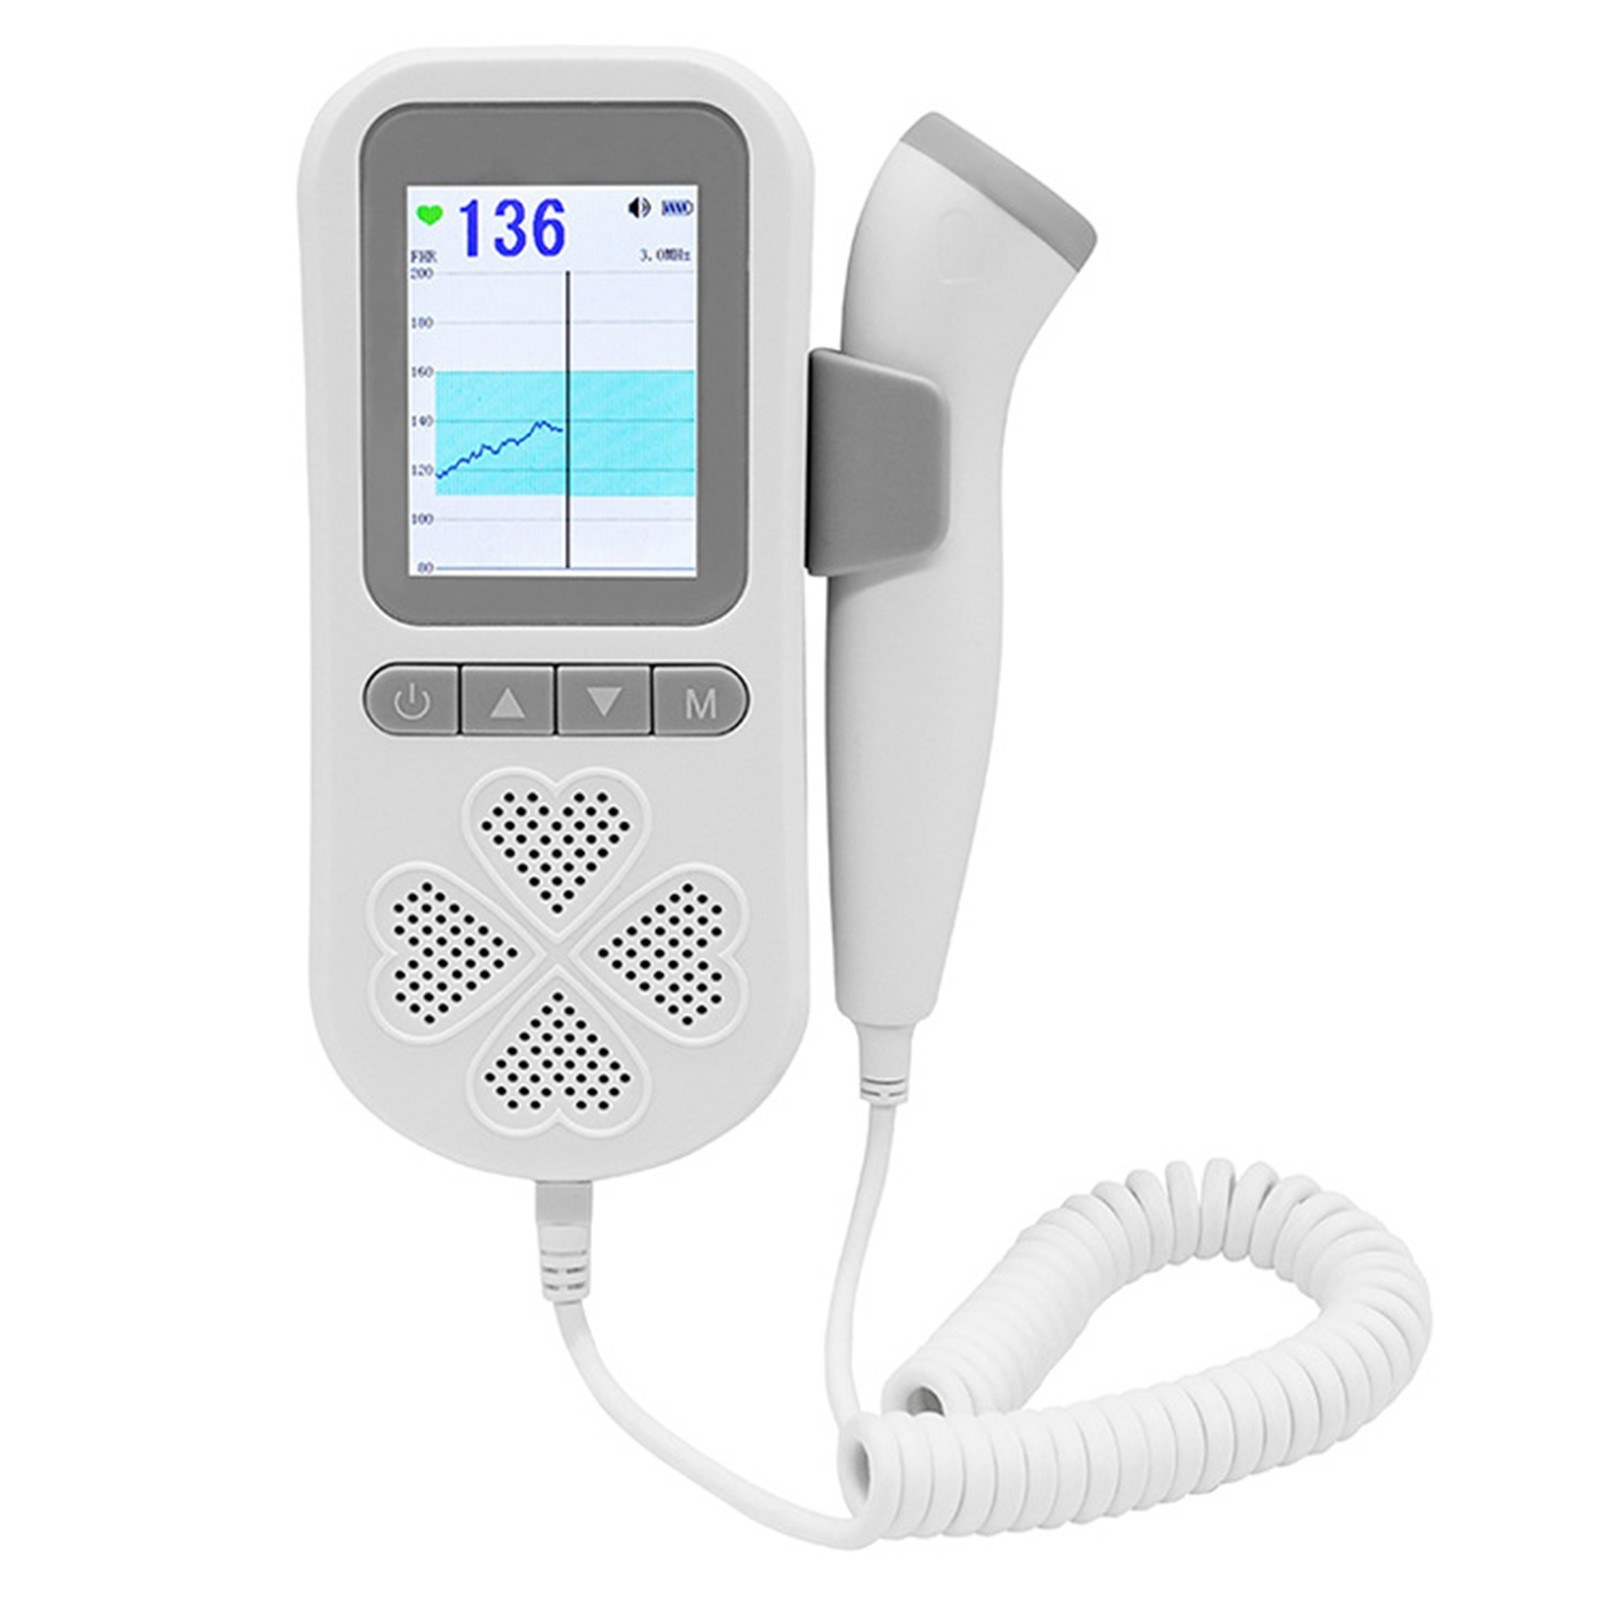 tomtop.com - 53% OFF Doppler Handheld Baby Heart Rate Detector, Free Shipping $26.99